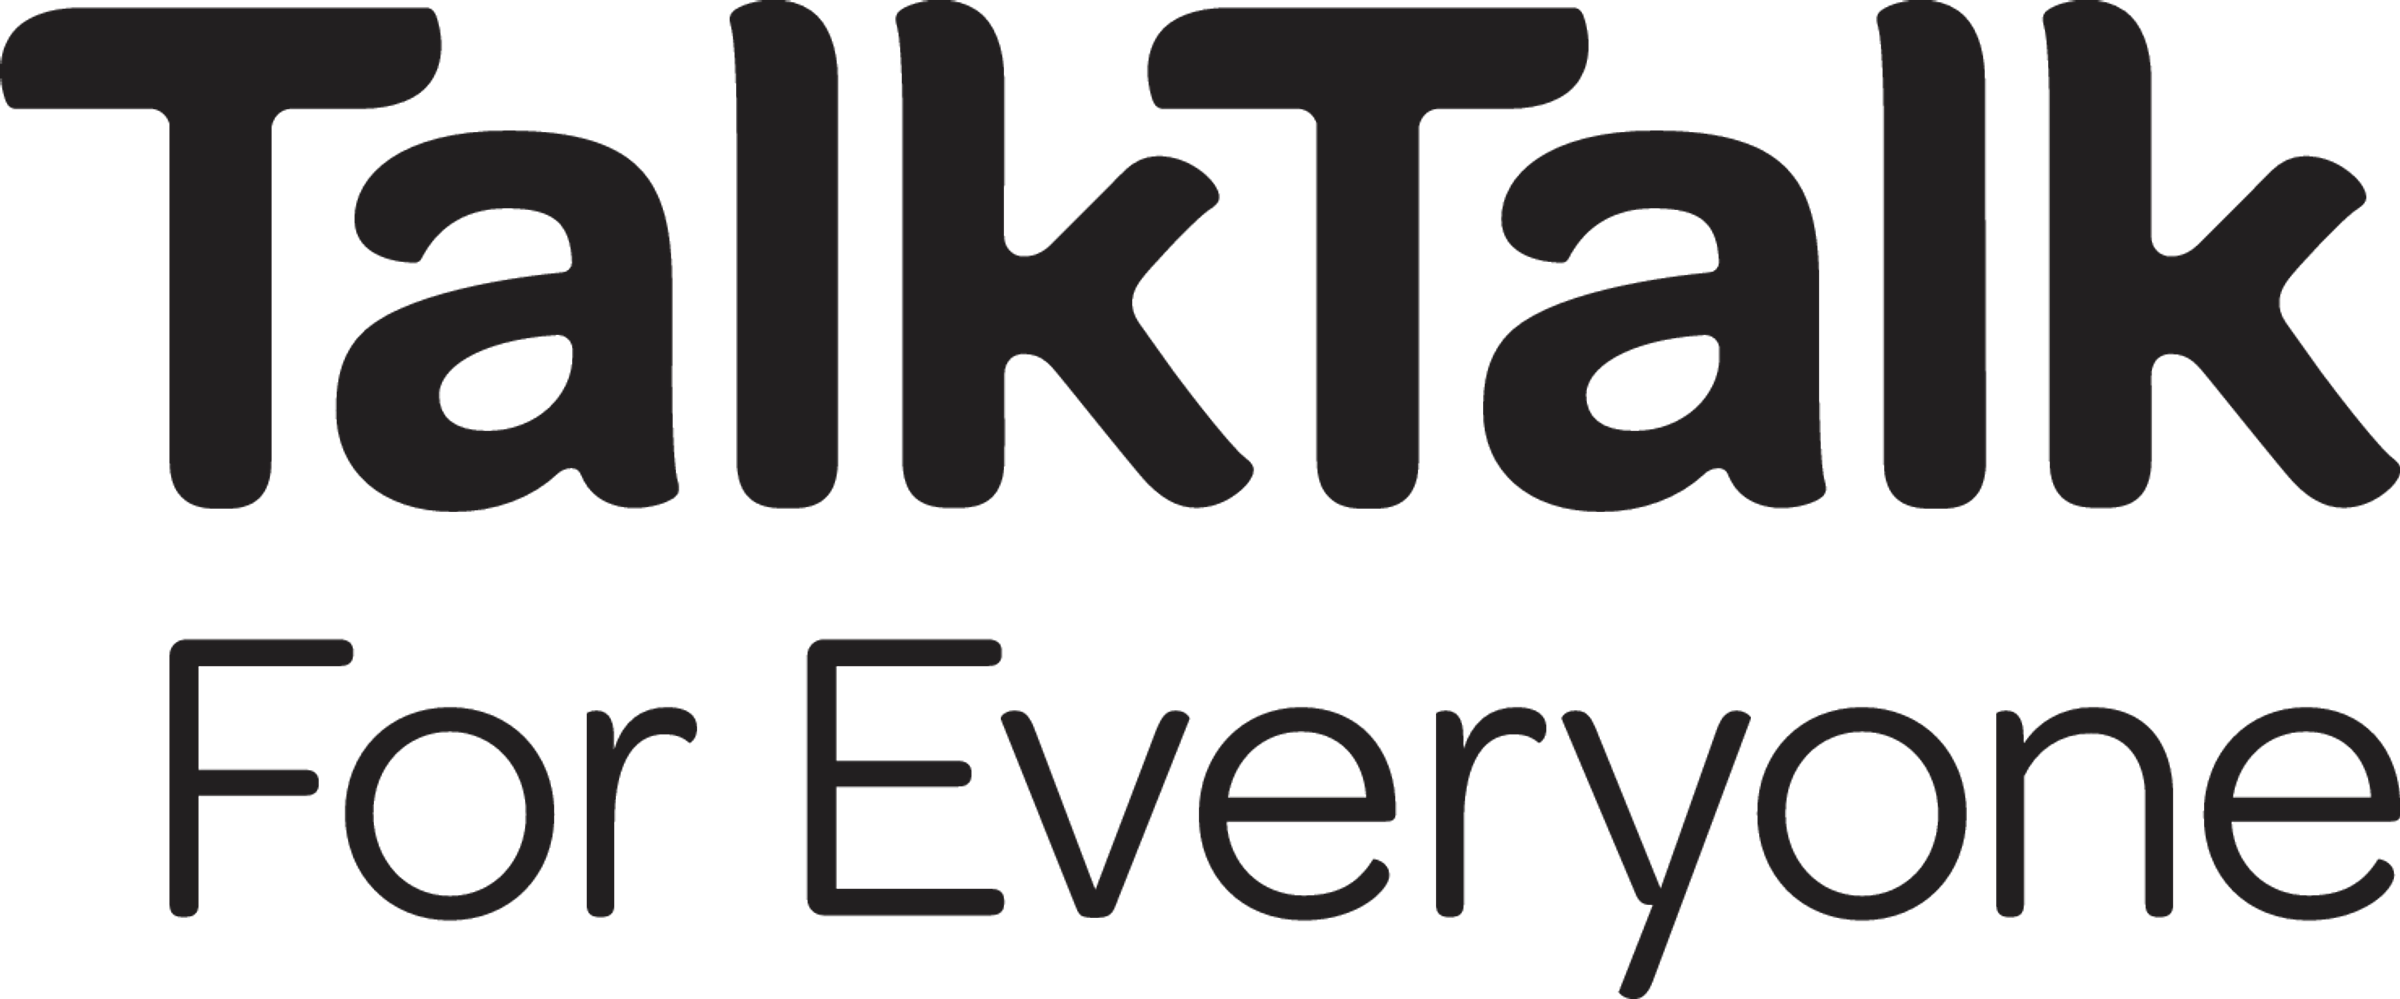 TalkTalk Phone and Broadband - Fibre 150 TV